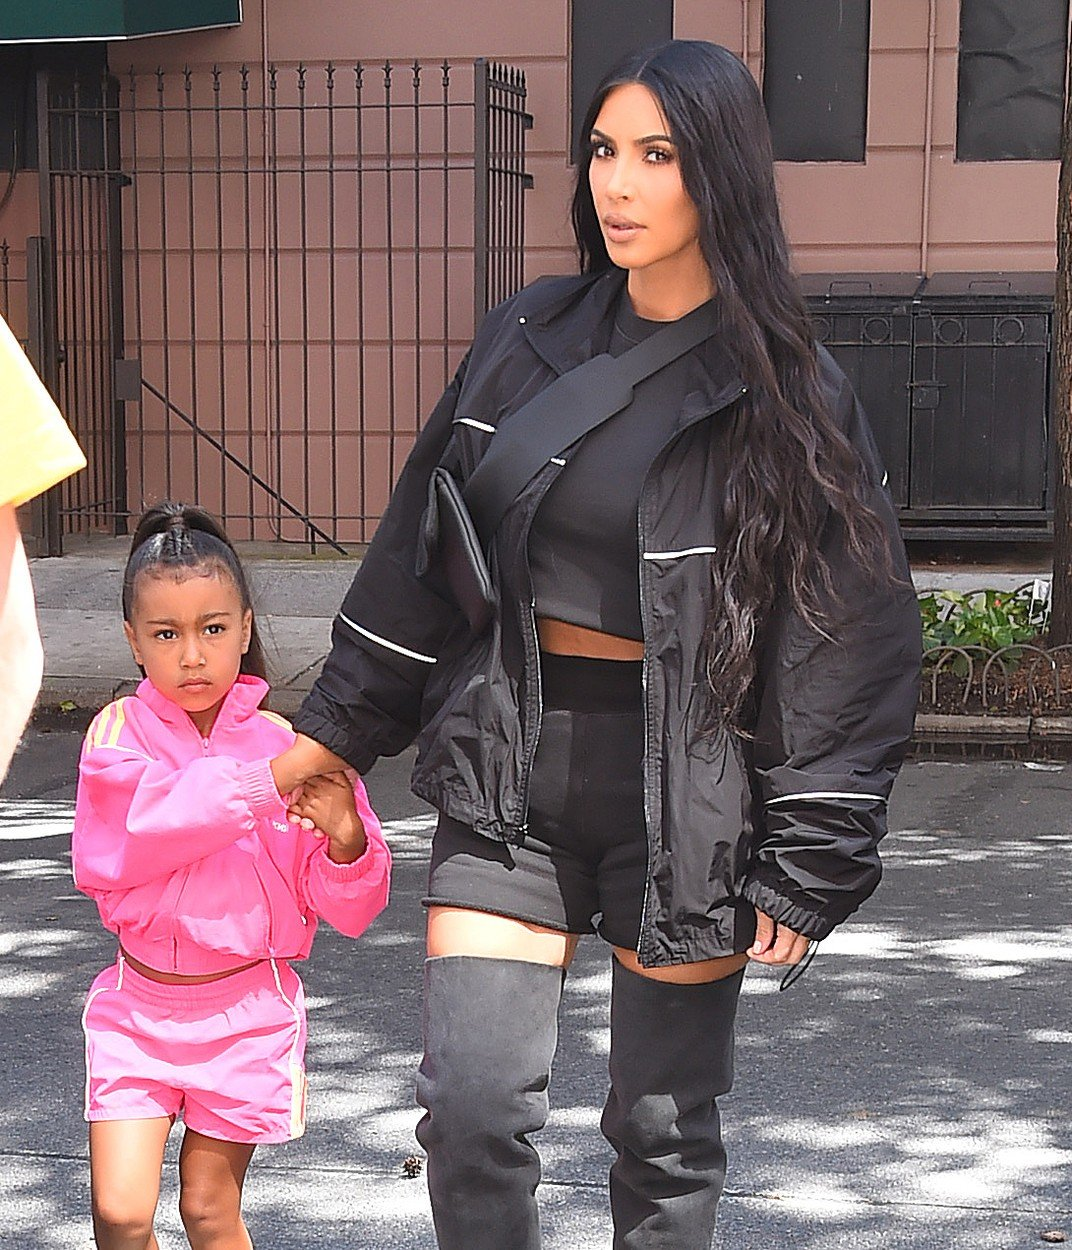 Kim Kardashian takes North out for ice cream. 14 Jun 2018, Image: 374921910, License: Rights-managed, Restrictions: World Rights, Model Release: no, Credit line: Profimedia, Mega Agency